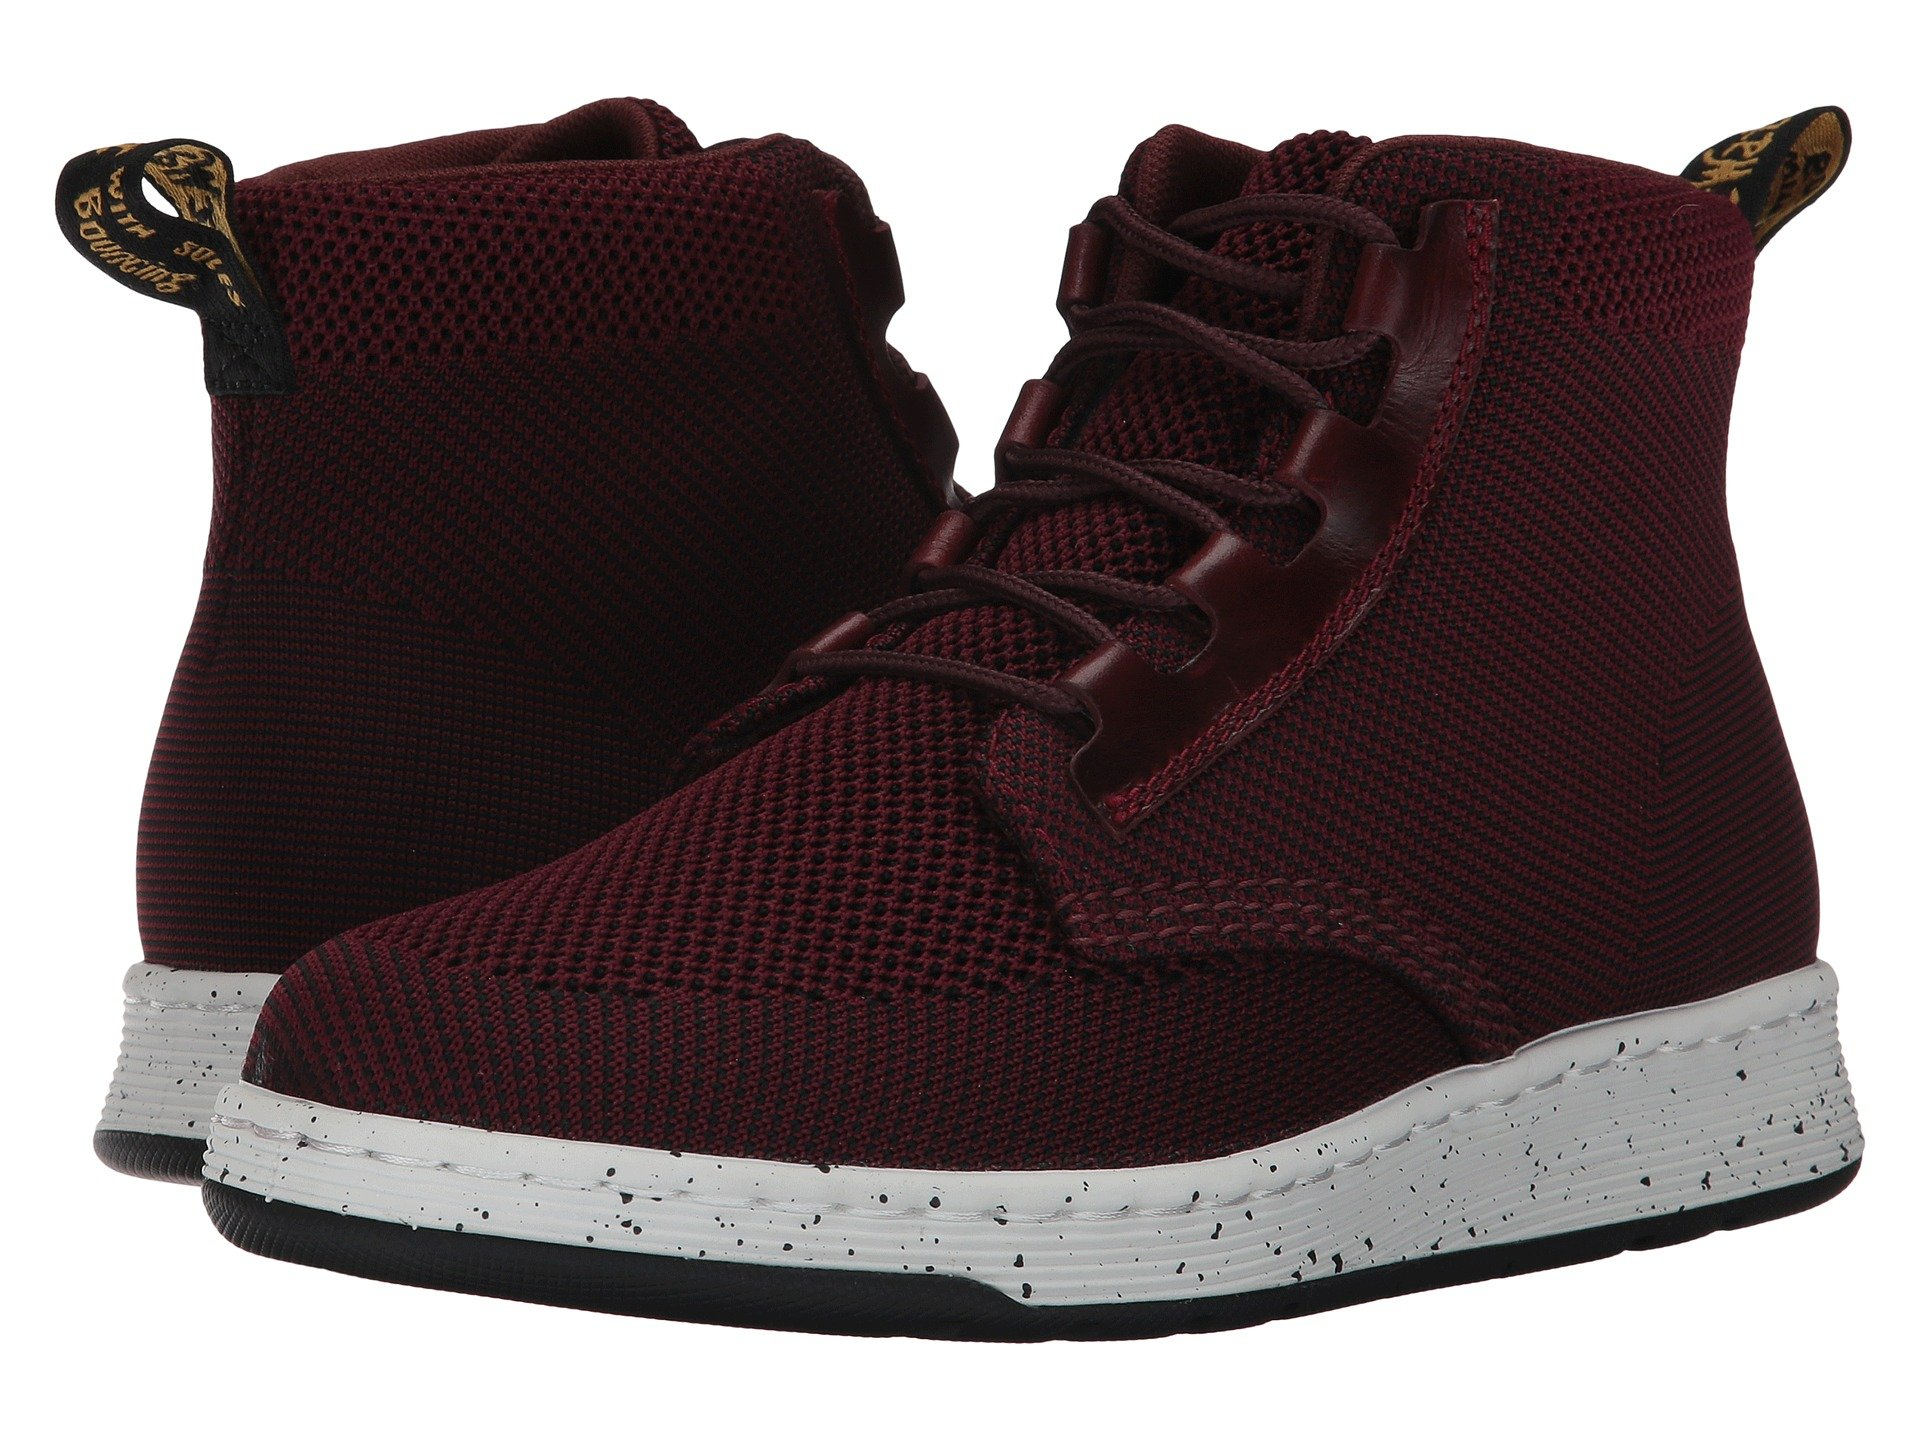 Telkes Knit Padded Collar Boot, Oxblood/Black Kint Textile/Oxblood Brando